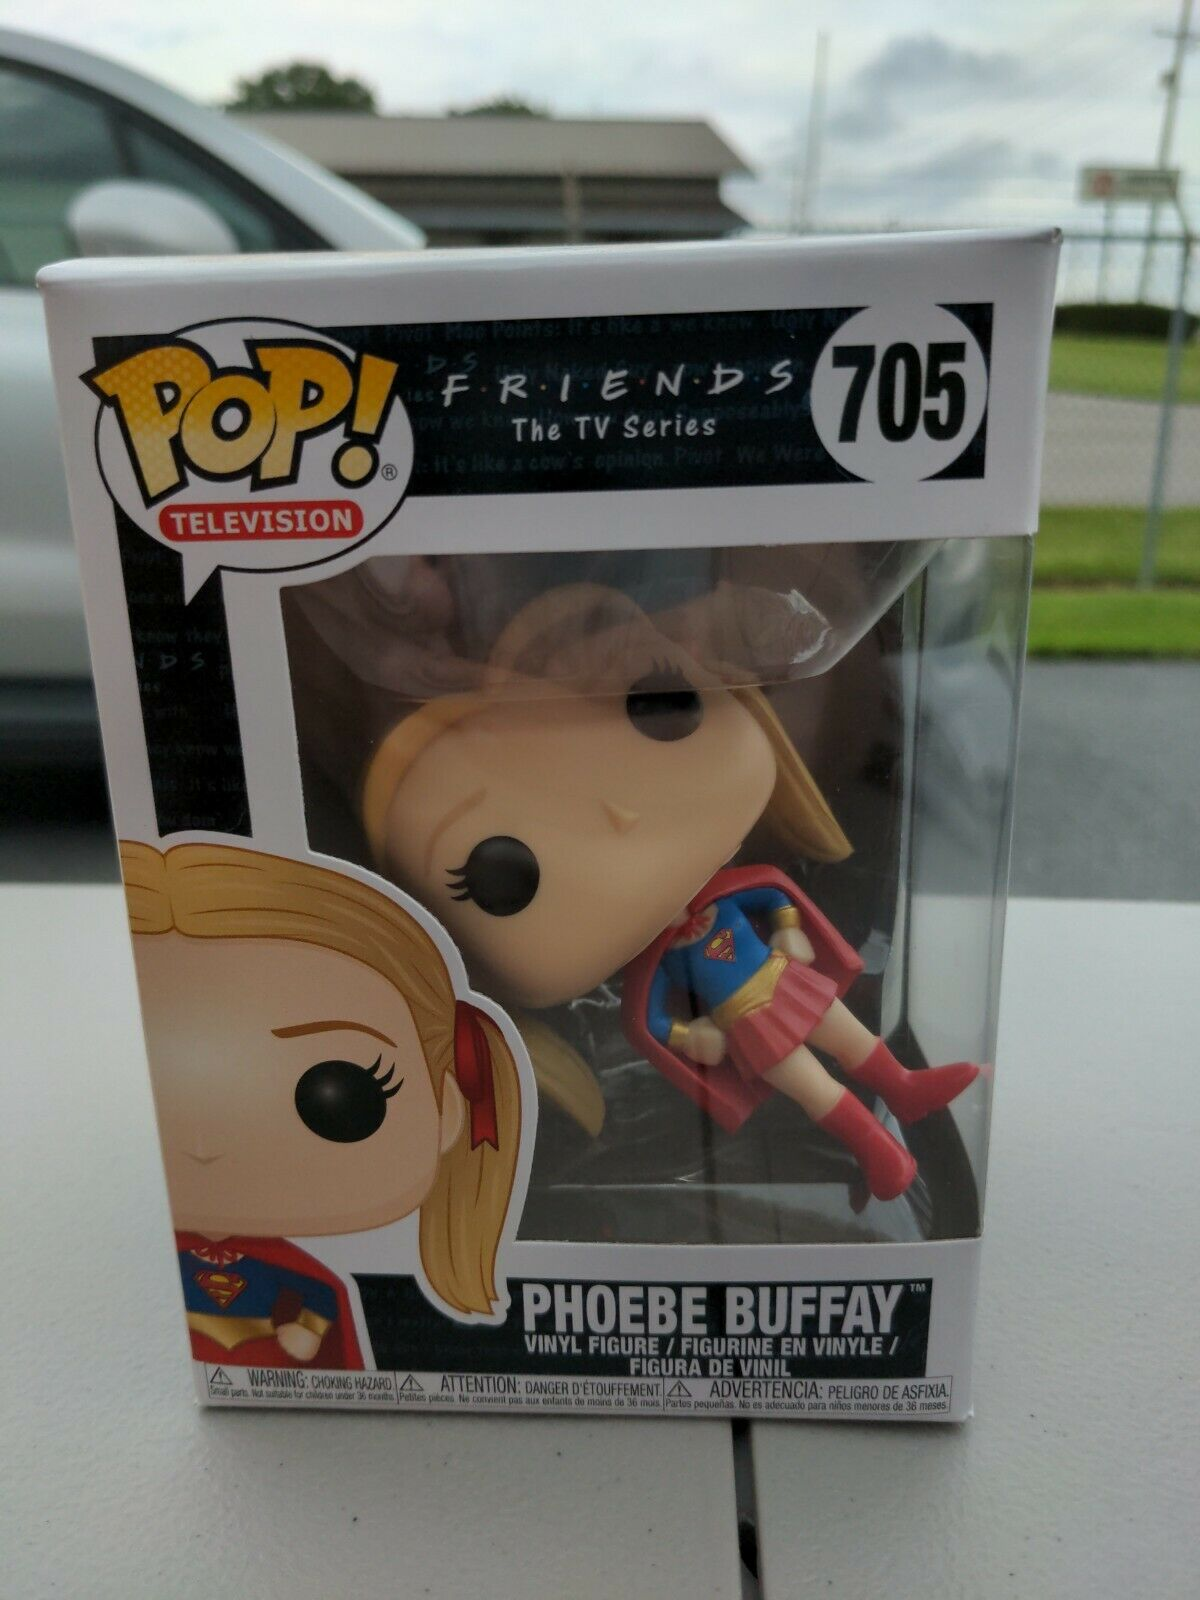 Funko Pop - Television 705 - Friends - Phoebe Buffay as Supergirl - Mint